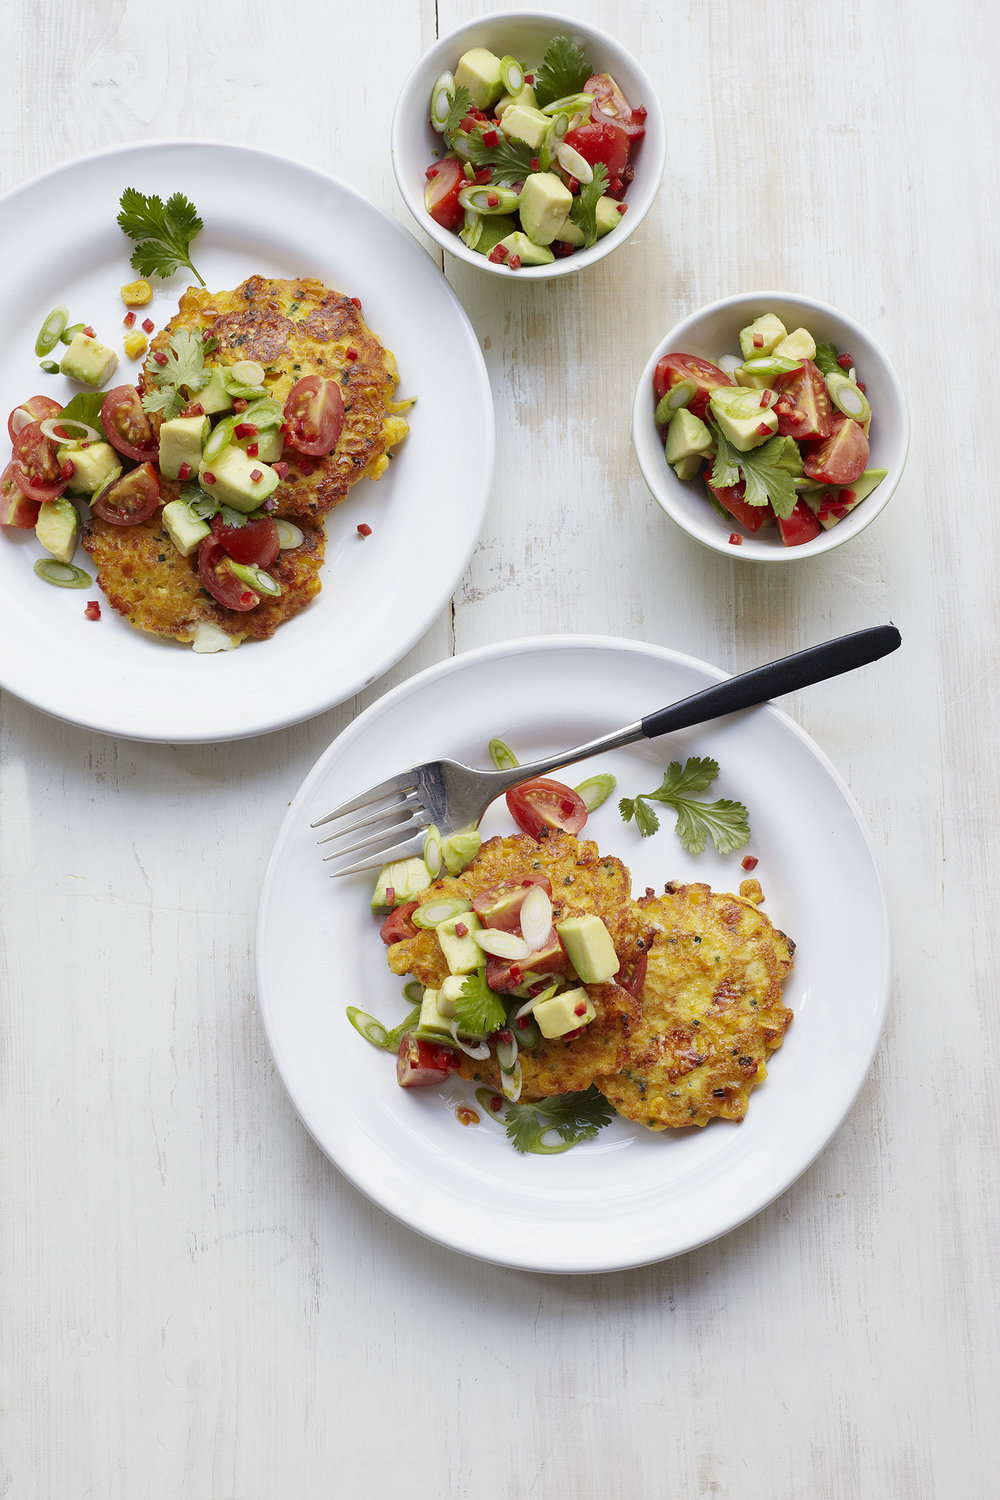 Sweetcorn Fritters & Chilli-avo Salsa Photograph Clare Winfield, Prop Styling Wei Tang (from The Goodness of Avocado)